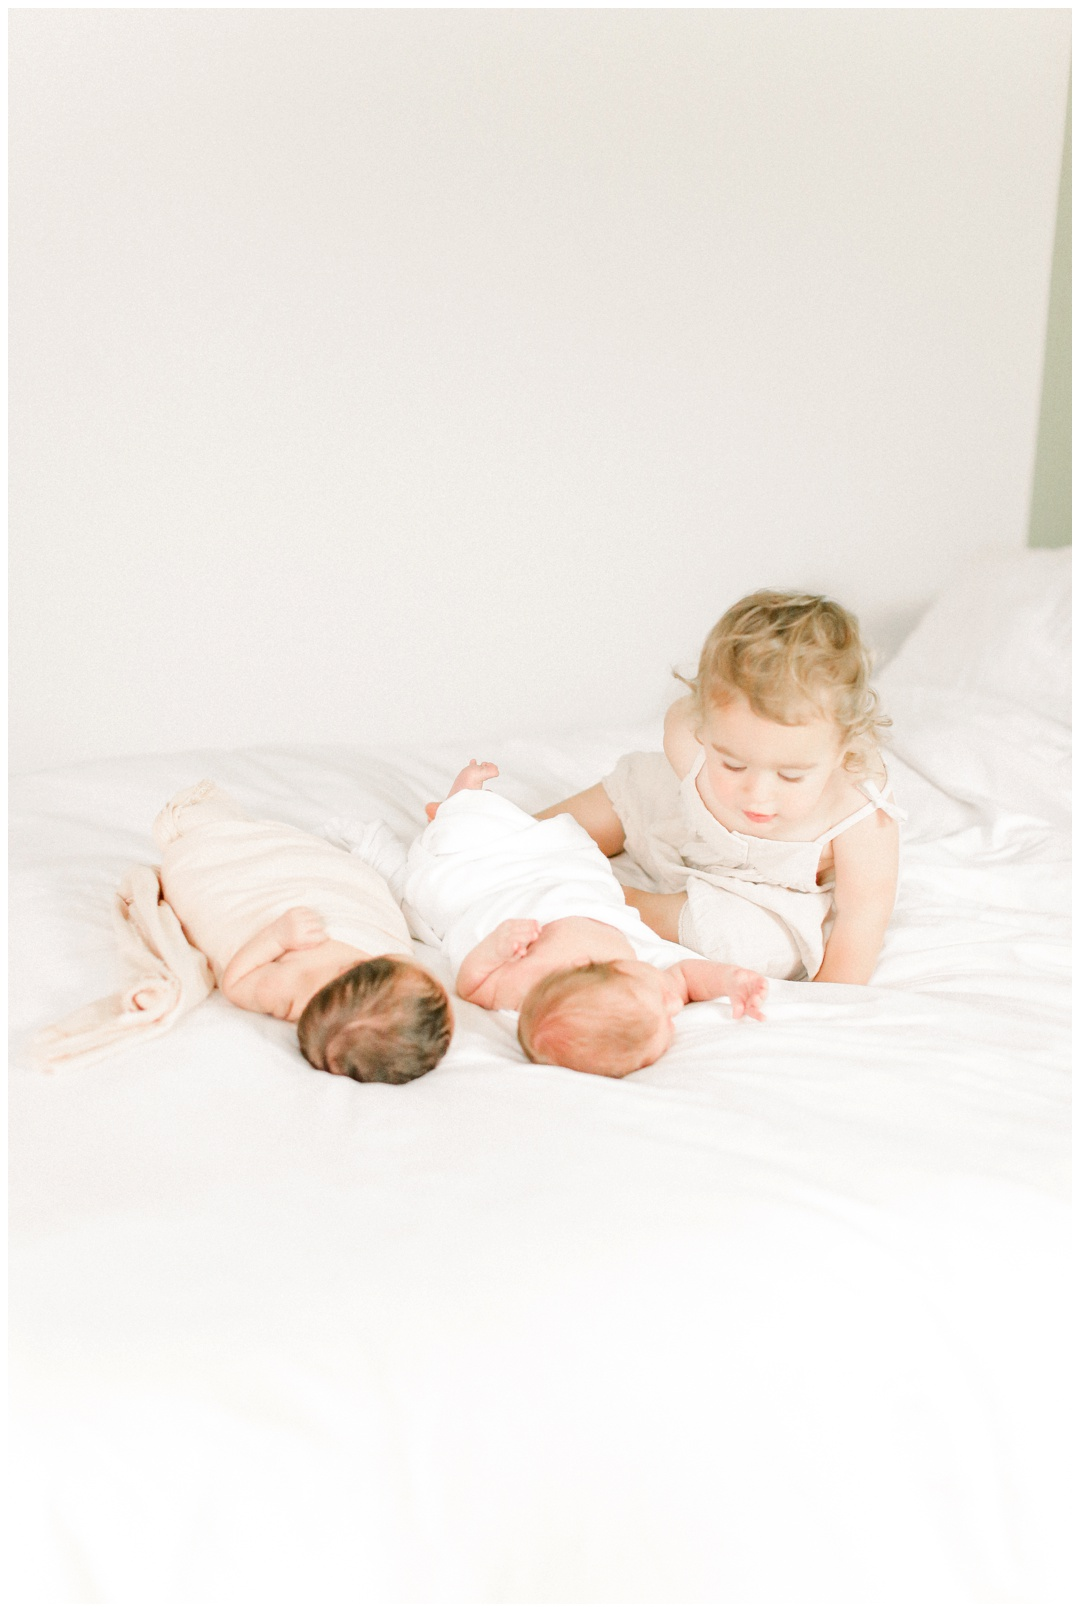 The_Garber_Family_Newborn_Twins_Session_Newport_Beach_Family_Photographer_Orange_County_Newborn_Photography_Cori_Kleckner_Photography_Orange_County_Family_Photographer_Beach_Family_Session_1200.jpg